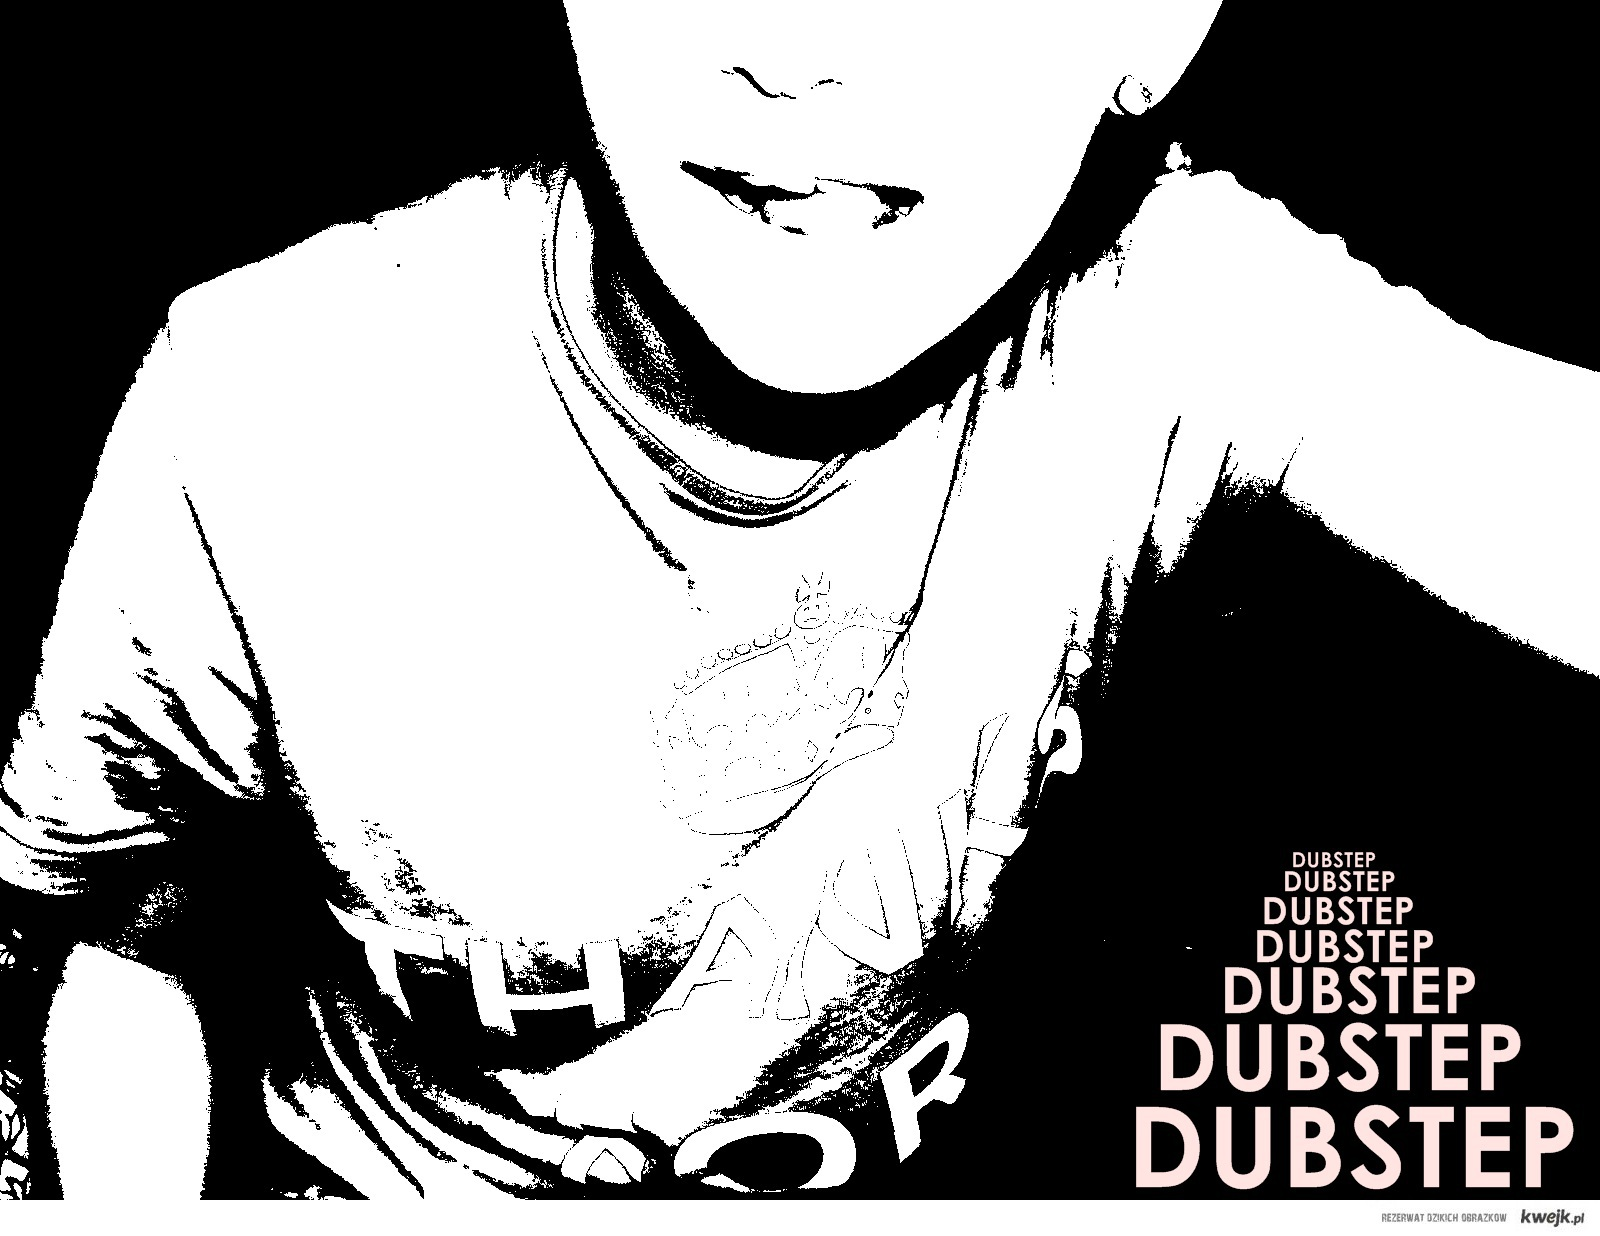 thanks for the dubstep